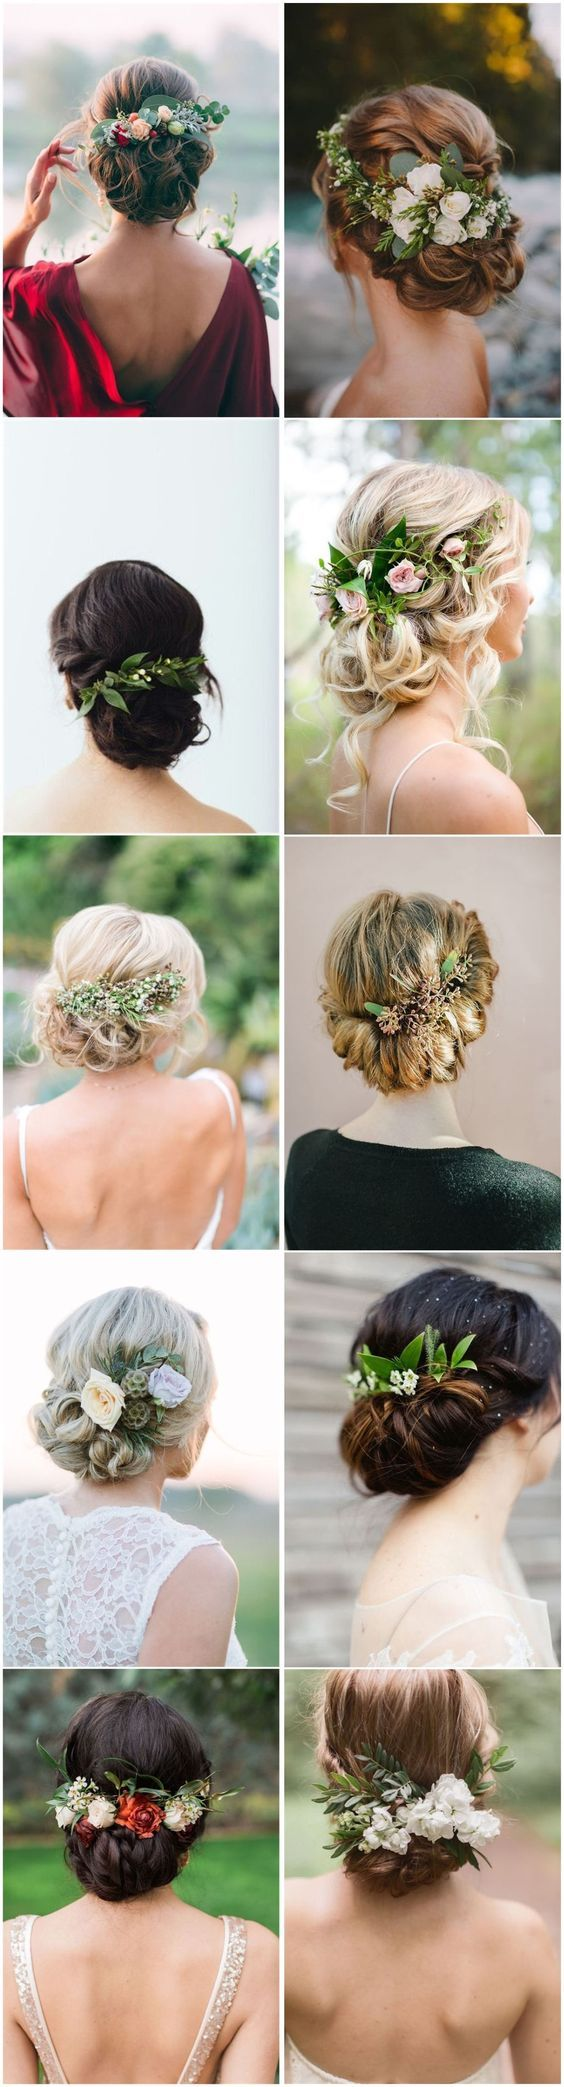 how to decorate for a wedding best 25 updo hairstyle ideas on prom hair 4914